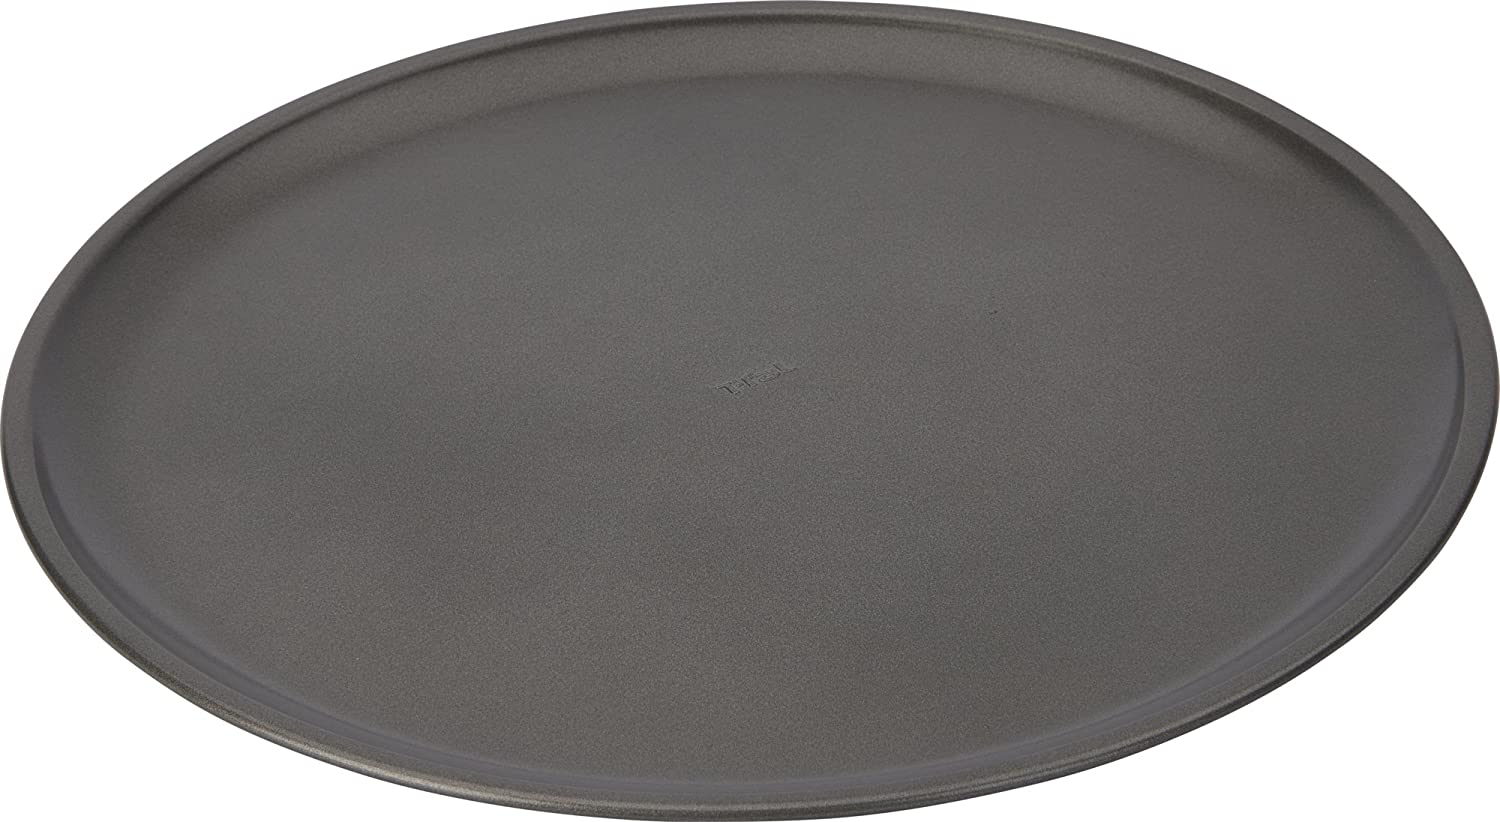 T-fal 84851 Signature Nonstick Pizza Pan, Large, Gray